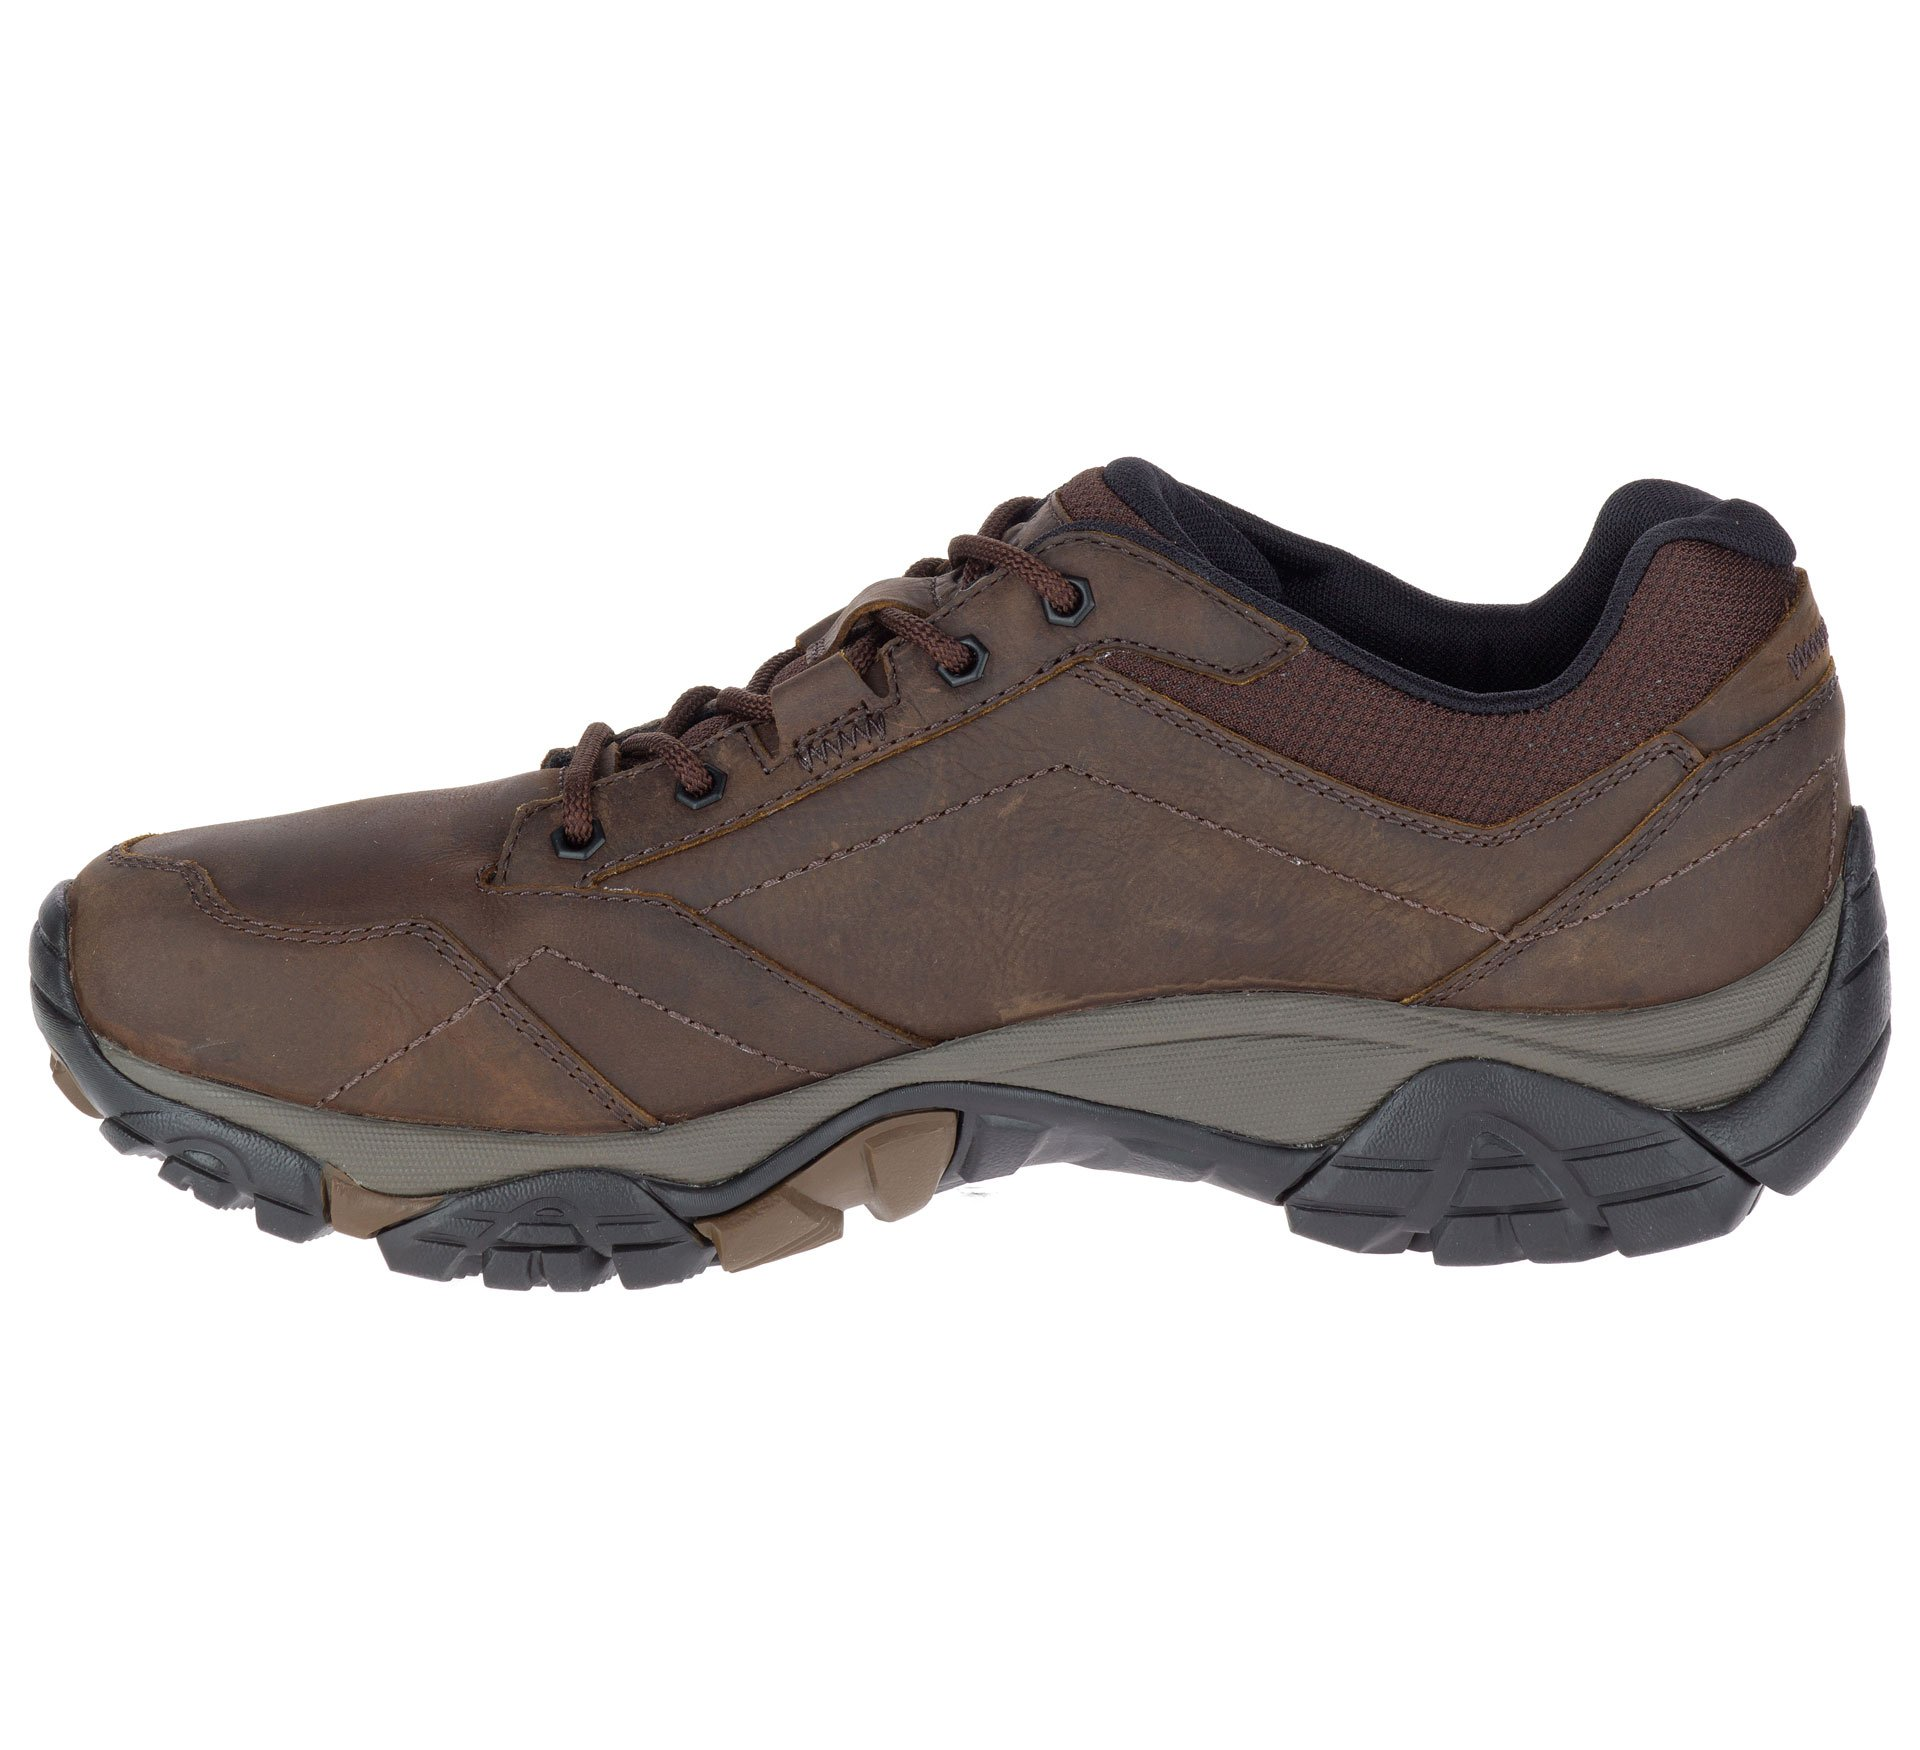 81NEabwtyZL - Merrell Men Moab Adventure Lace Waterproof Hiking Shoes